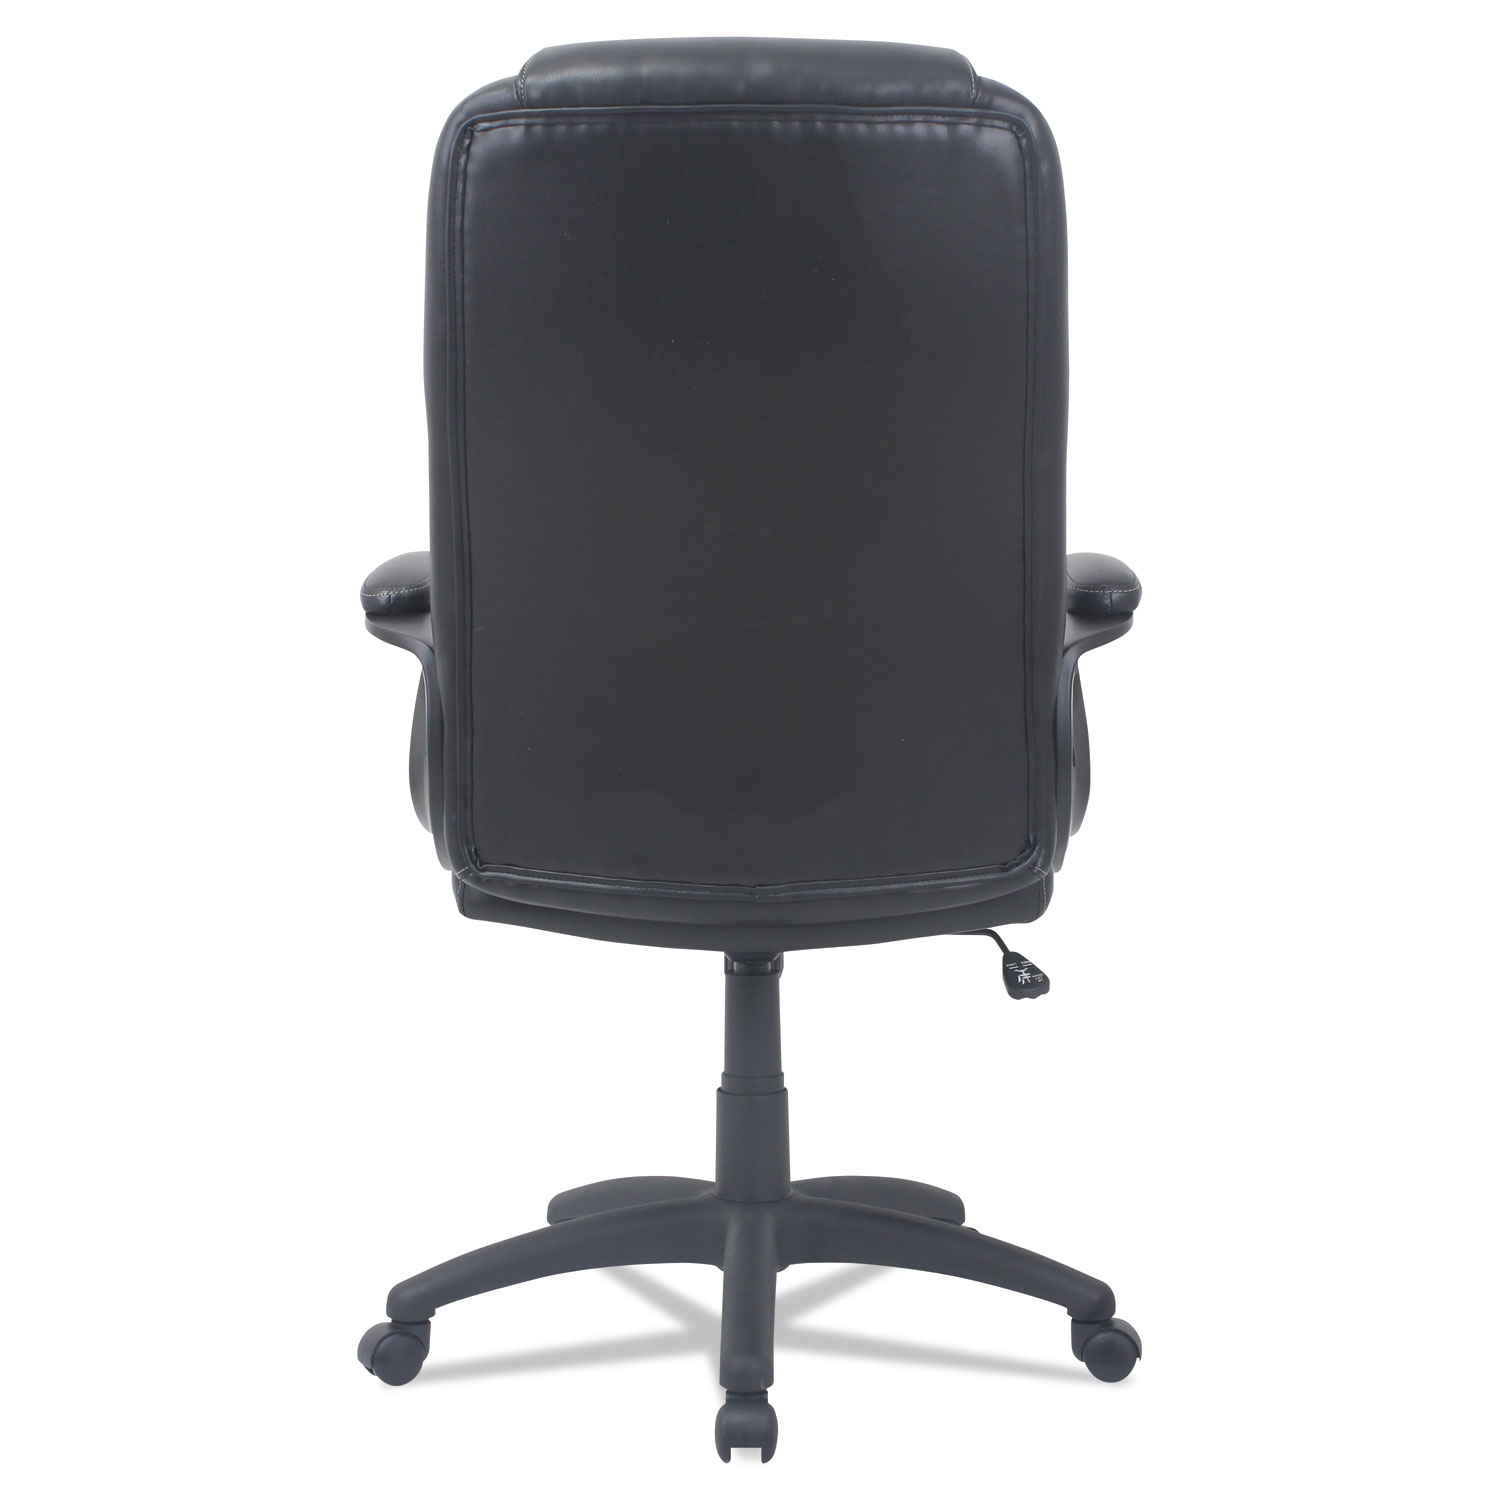 high back leather chairs. Alera CC Series Executive High-Back Leather Chair, Black High Back Chairs